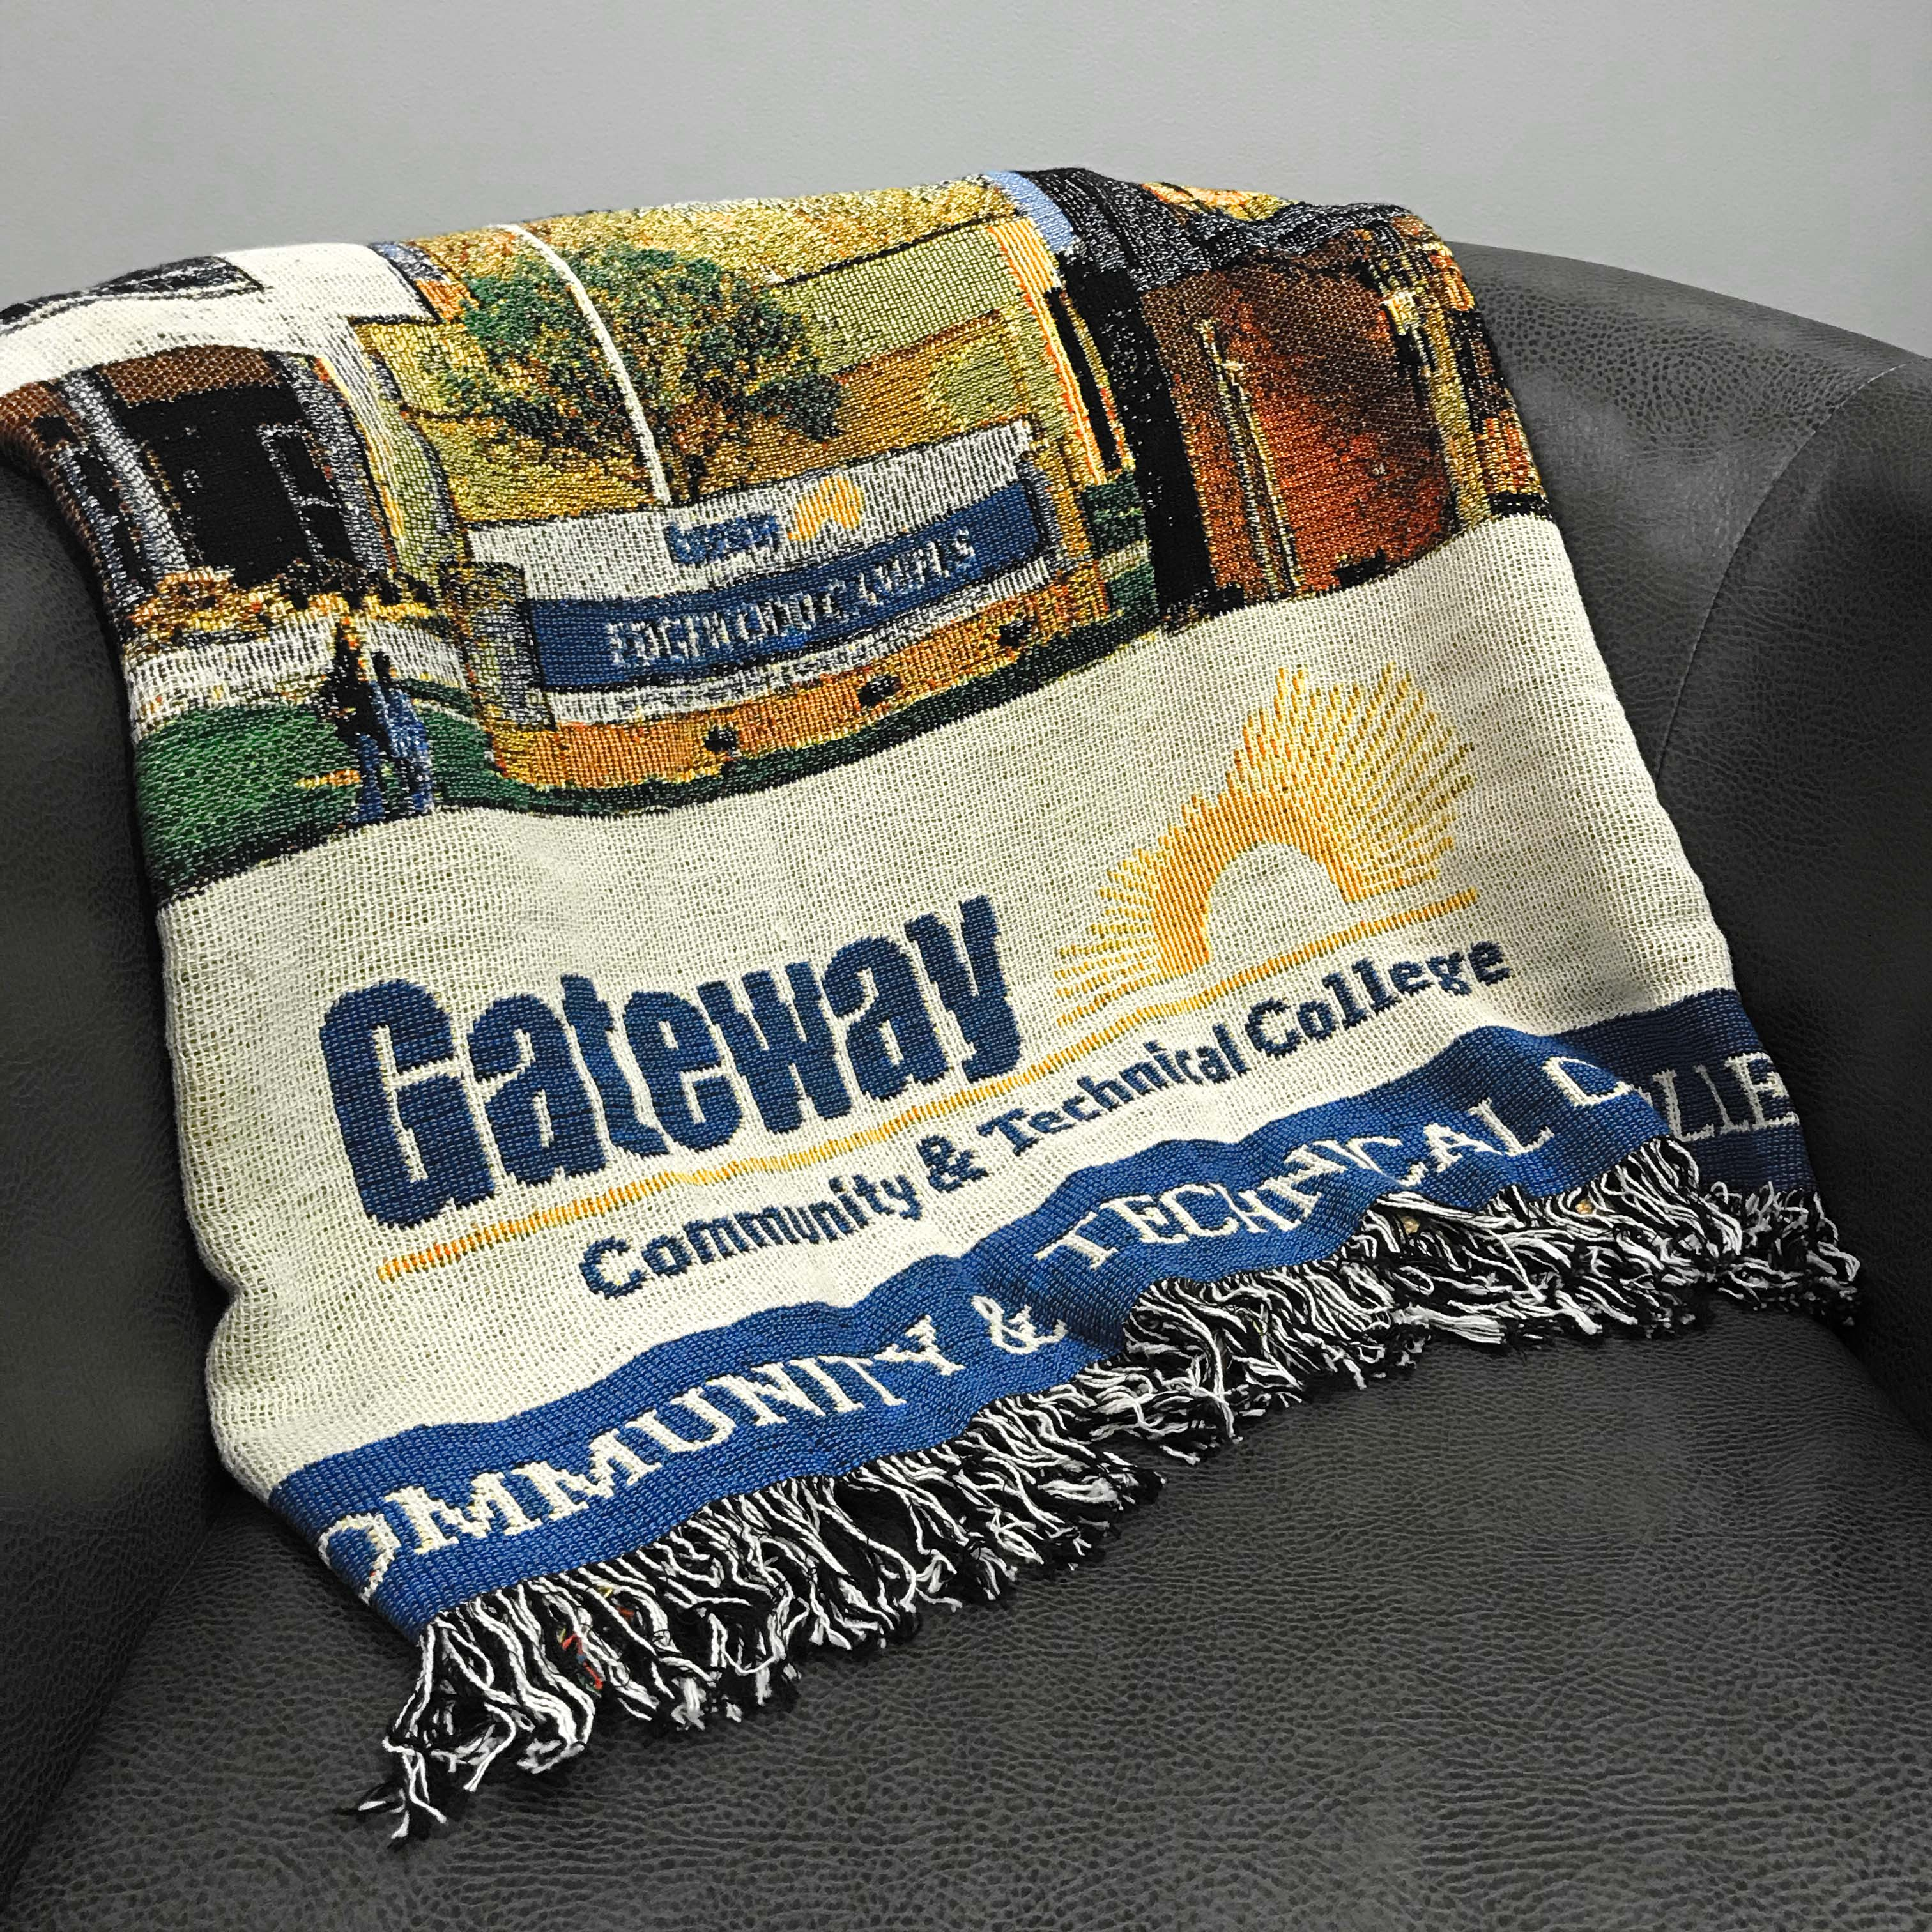 Gateway Community College blanket.